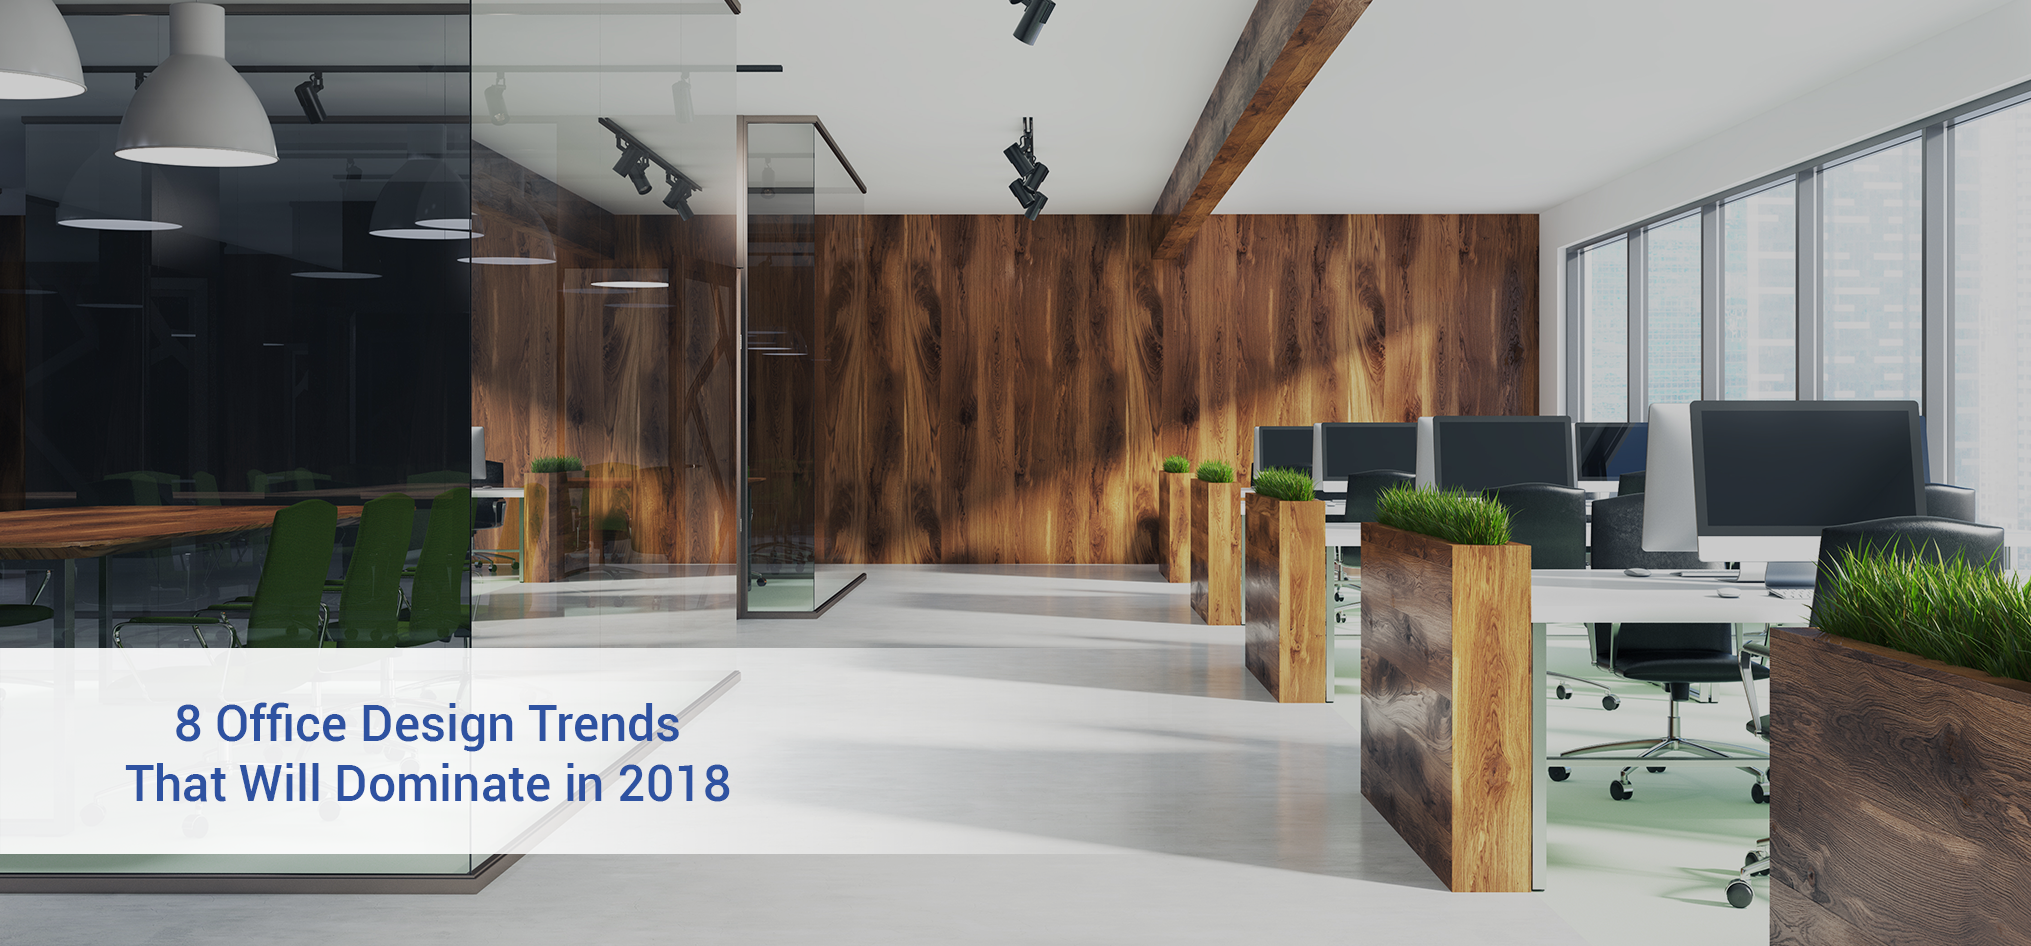 8 office design trends that will dominate in 2018 figari for Office design 2018